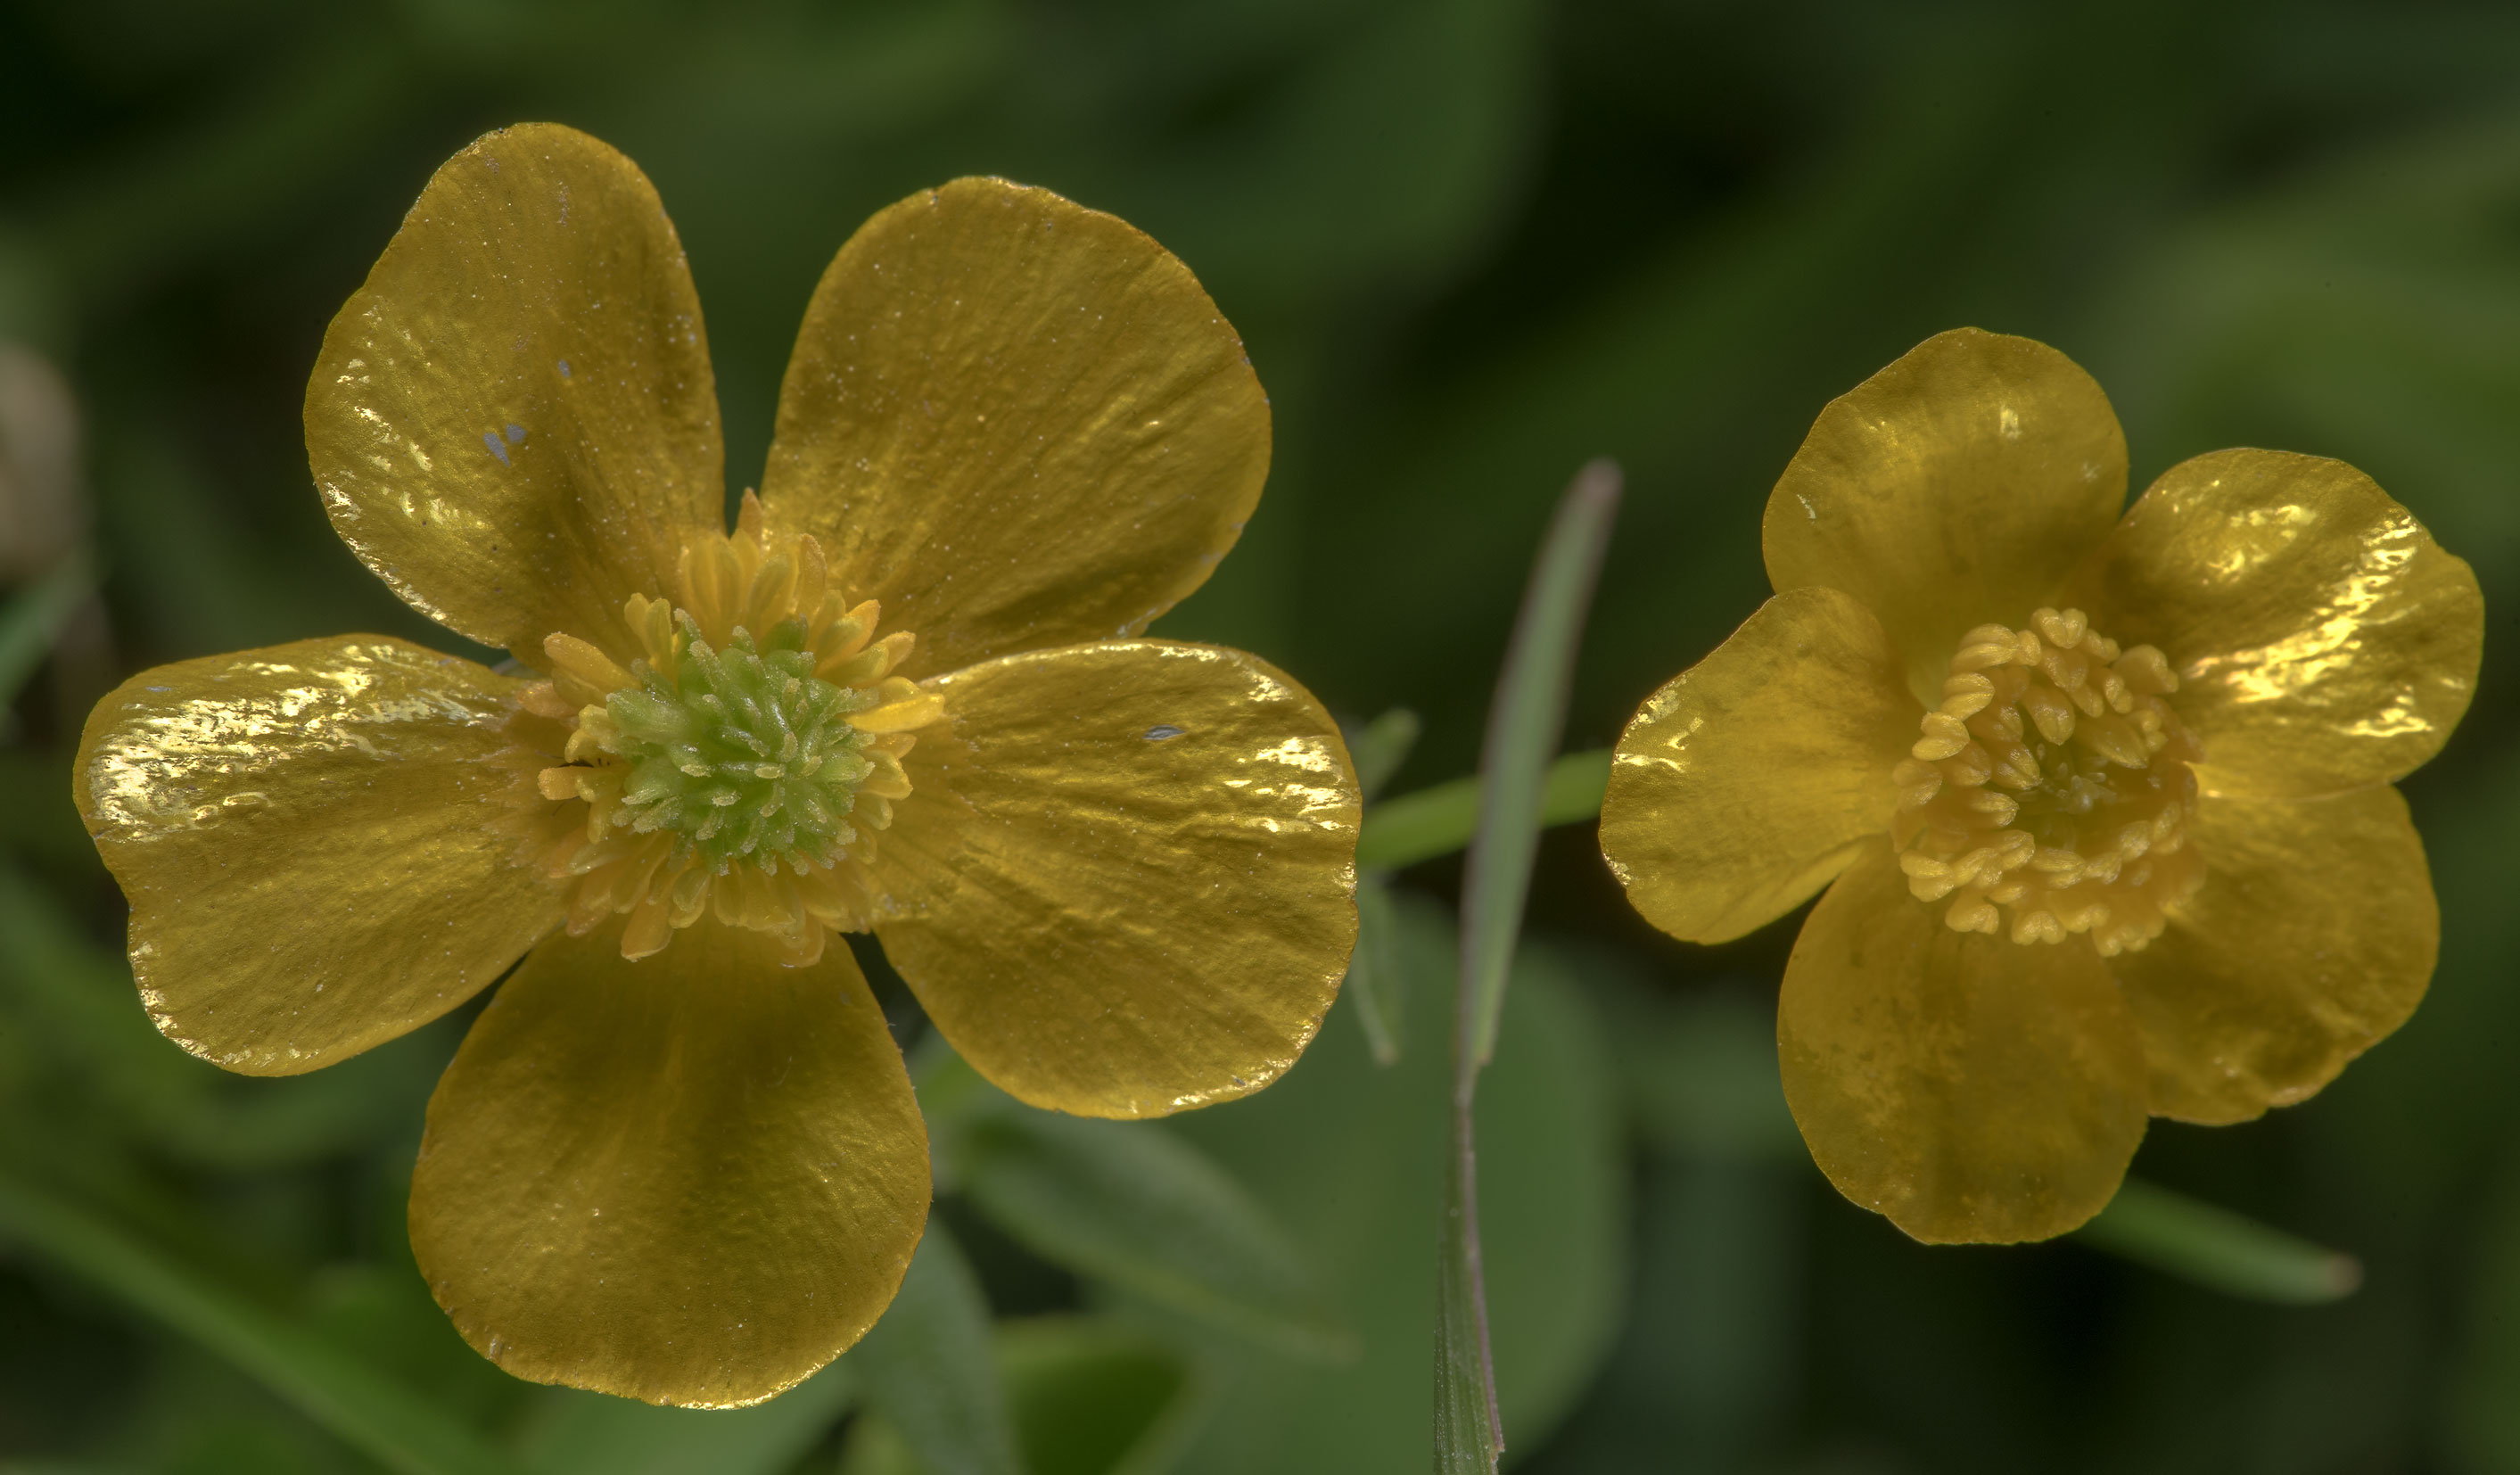 Yellow flowers of buttercup (Ranunculus) near a...State Historic Site. Washington, Texas